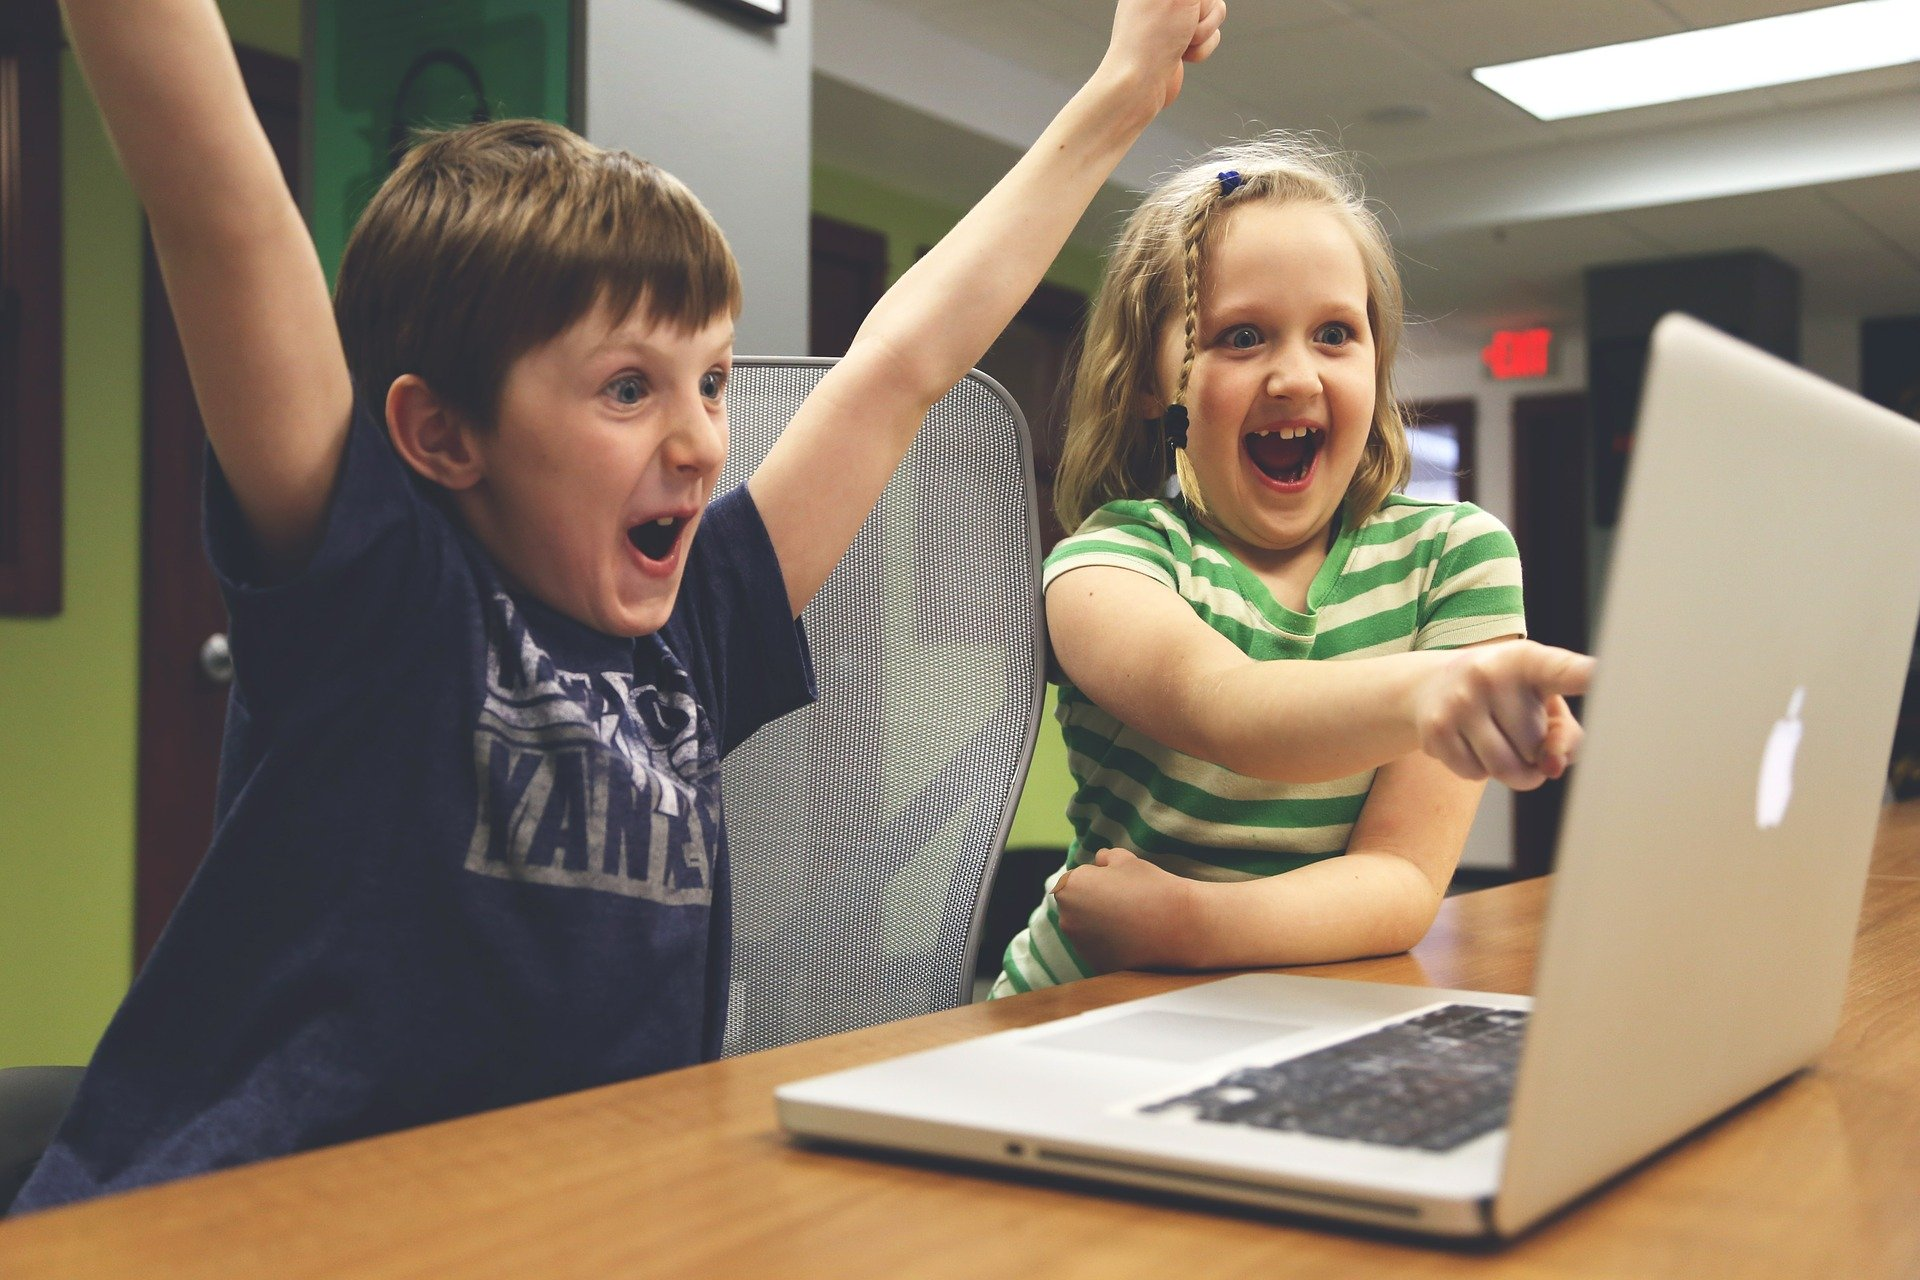 Image shows two young children looking and pointing at a laptop screen. The boy has his arms in the air, celebrating and the girl smiles broadly as sh e points at the screen